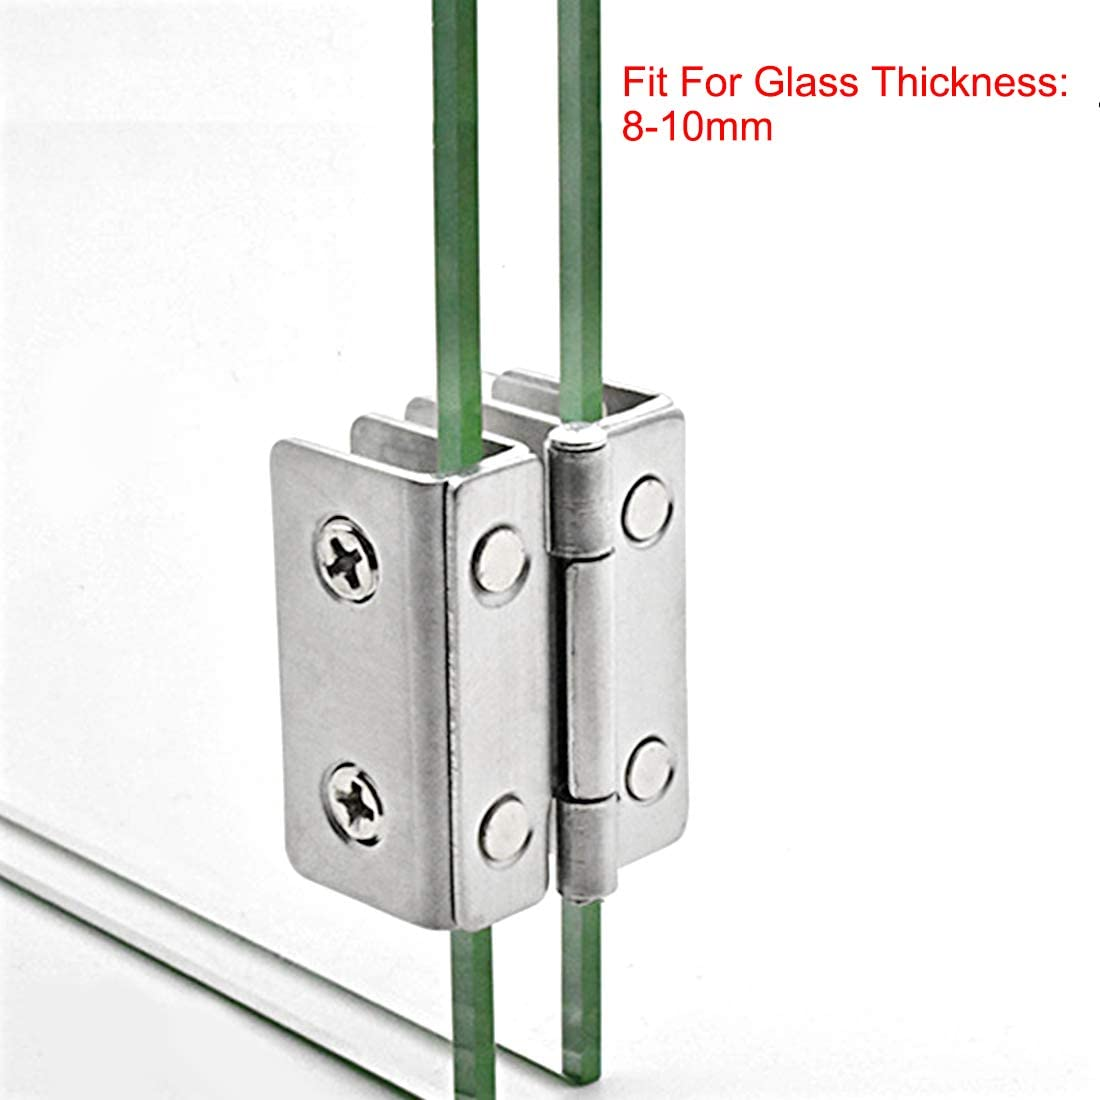 for 8-10mm Glass Thickness 2Pcs uxcell Glass Hinge Cabinet Door Cupboard Showcase Hinge Glass Clamp,Stainless Steel